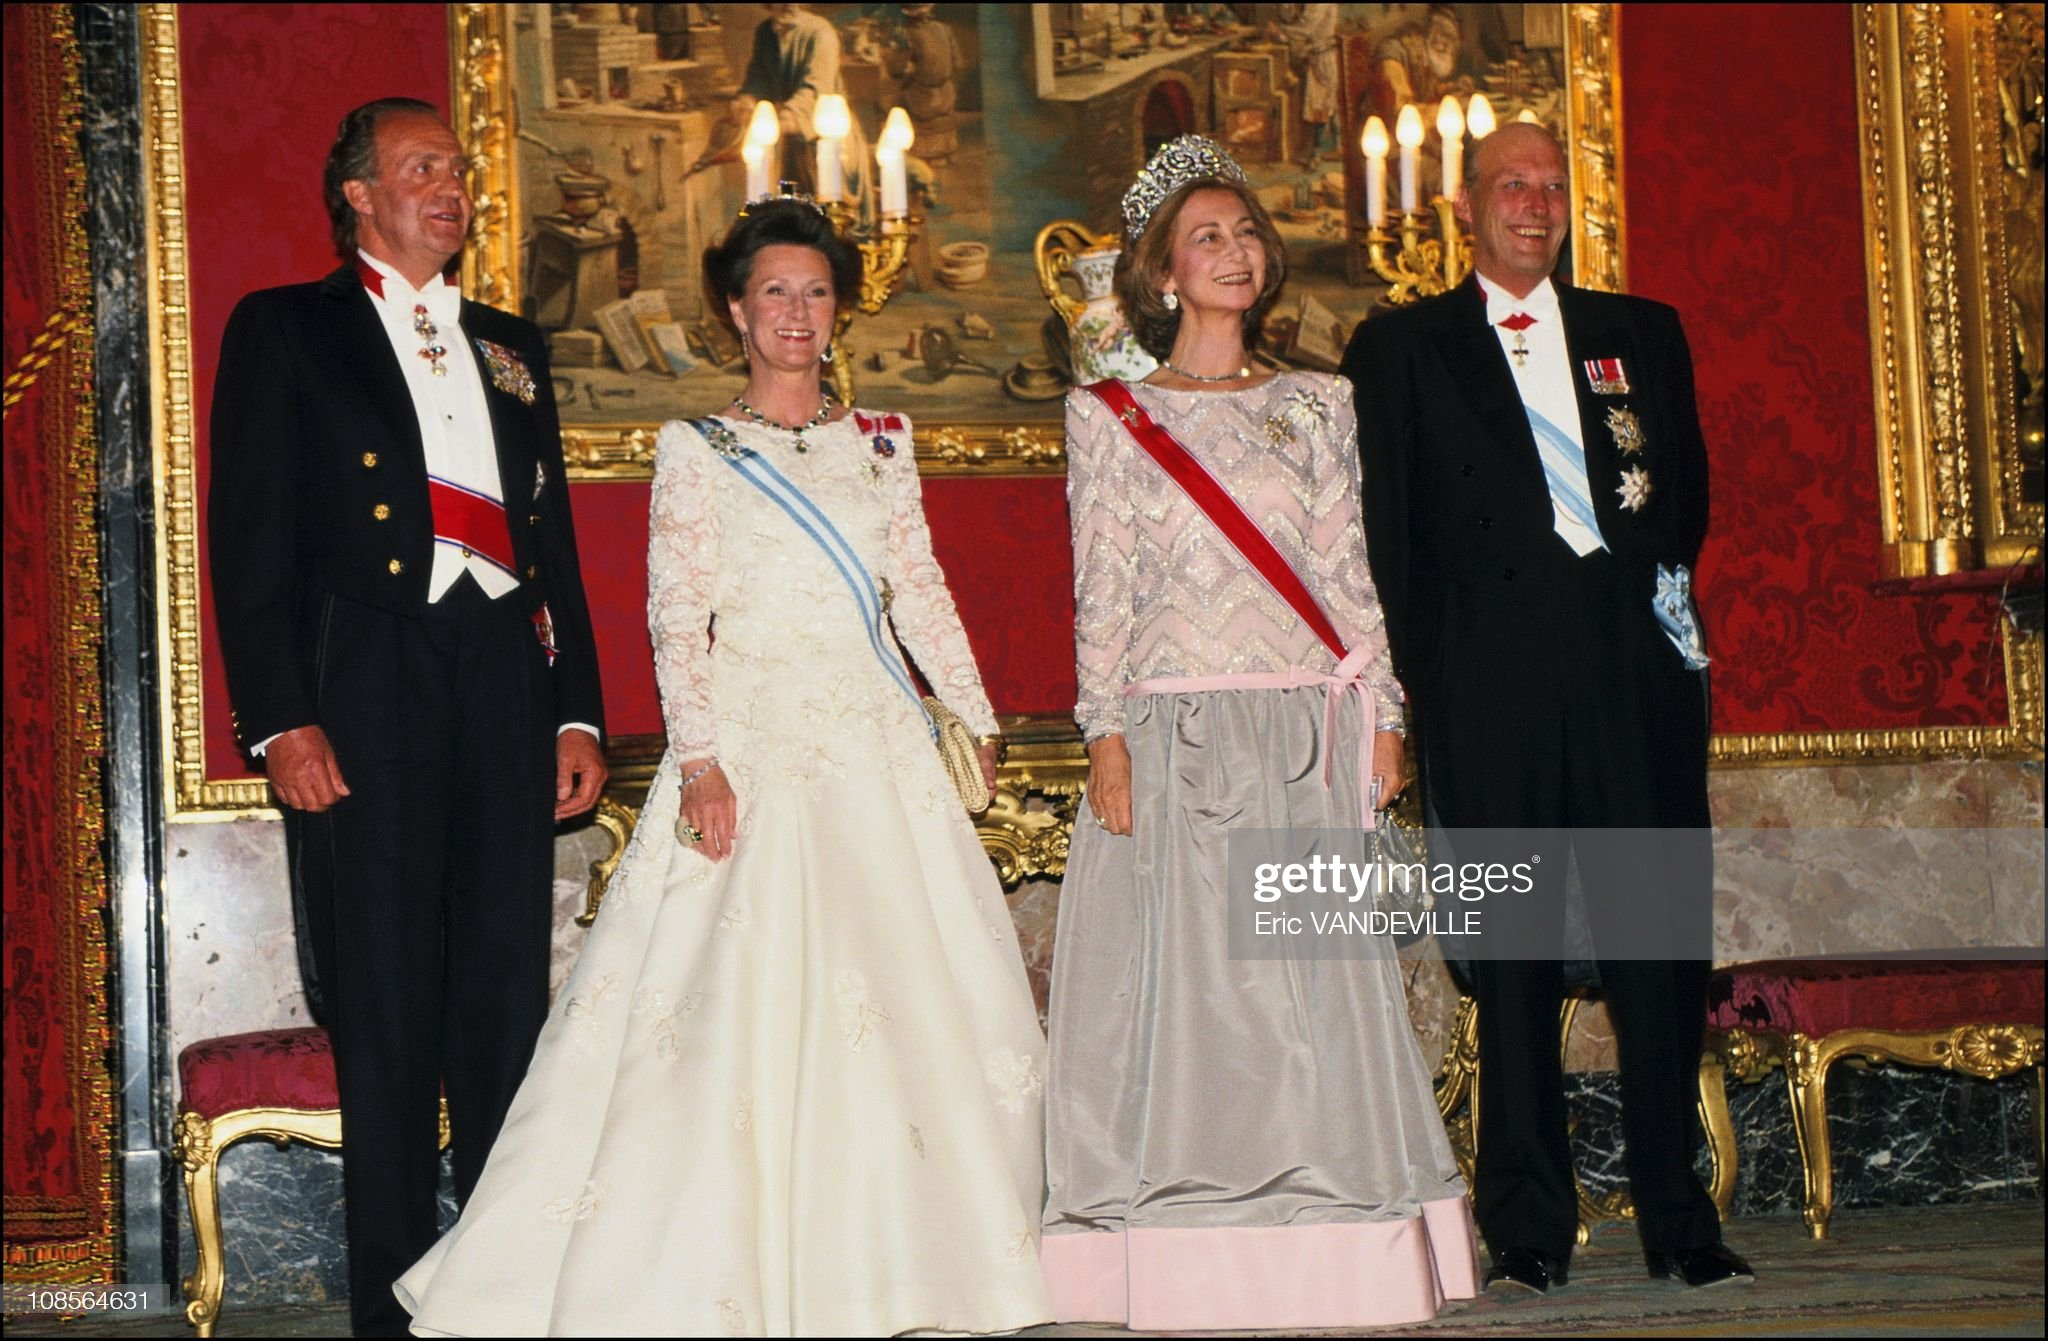 Visit of Harald and Sonia of Norway in Madrid, Spain on April 25th, 1995. : News Photo